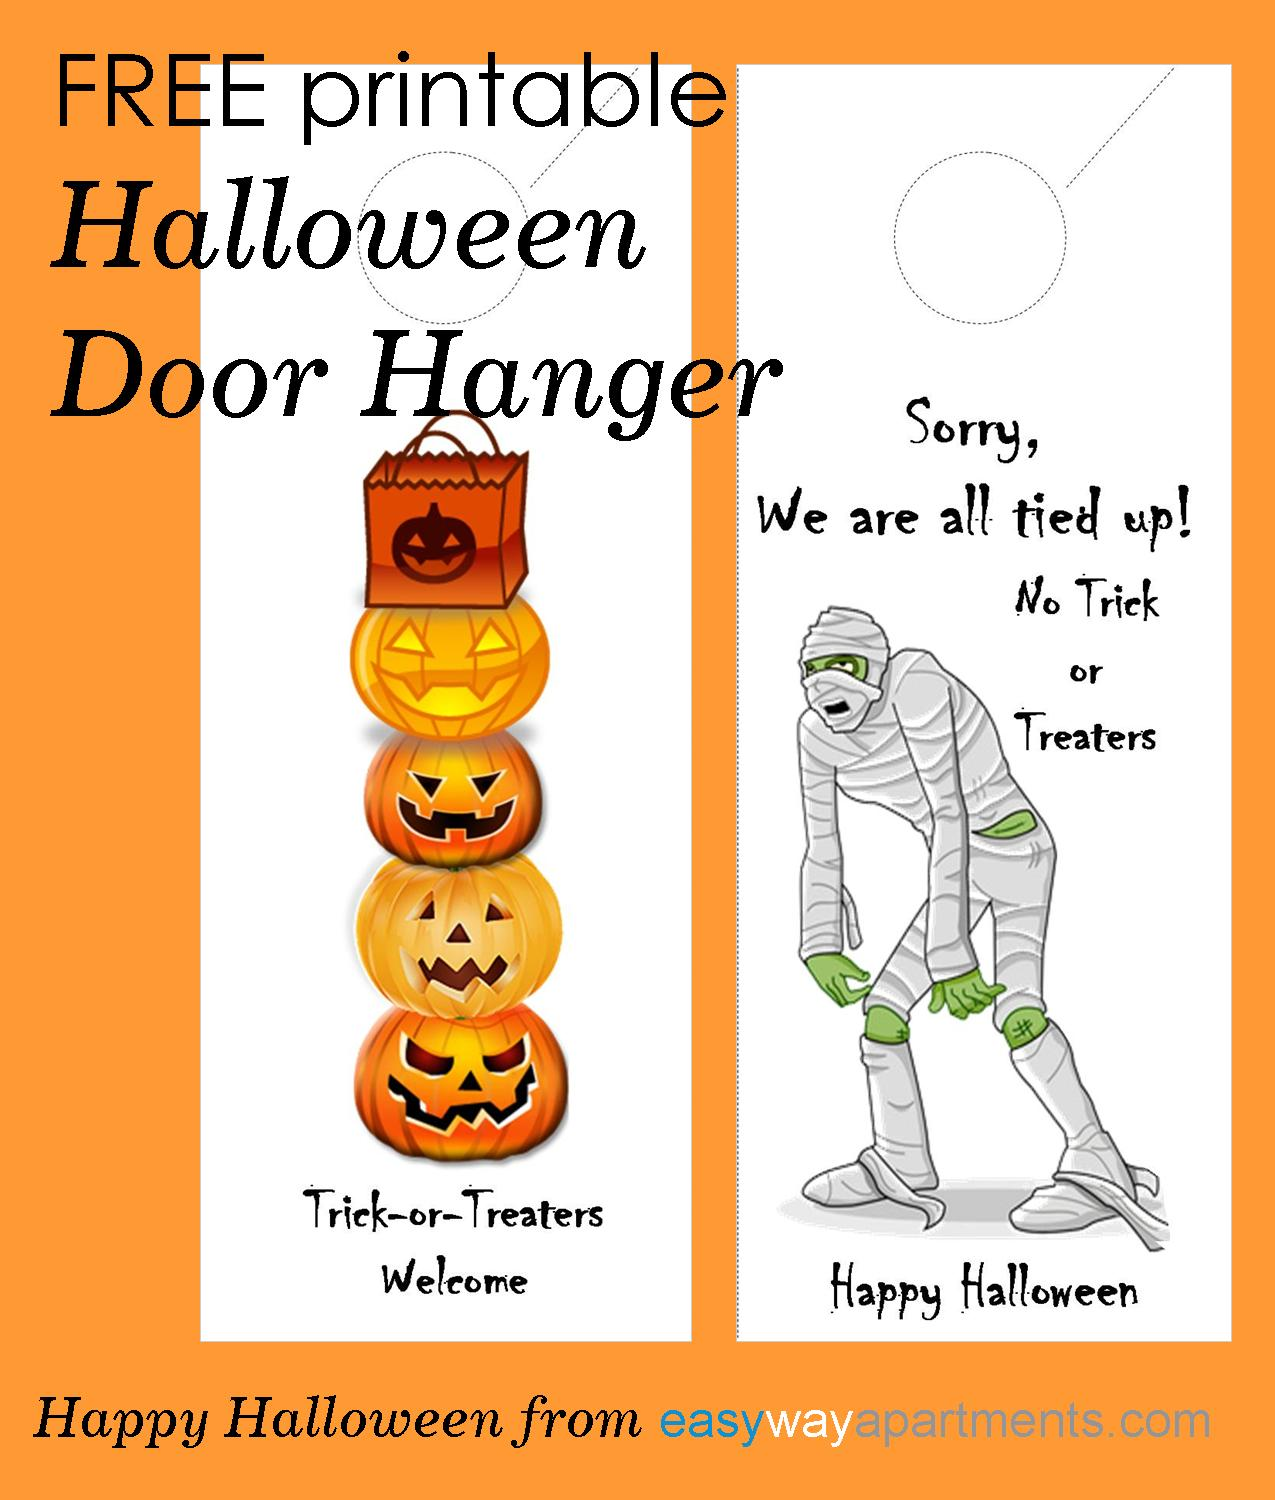 FREE printable Halloween Door Hanger